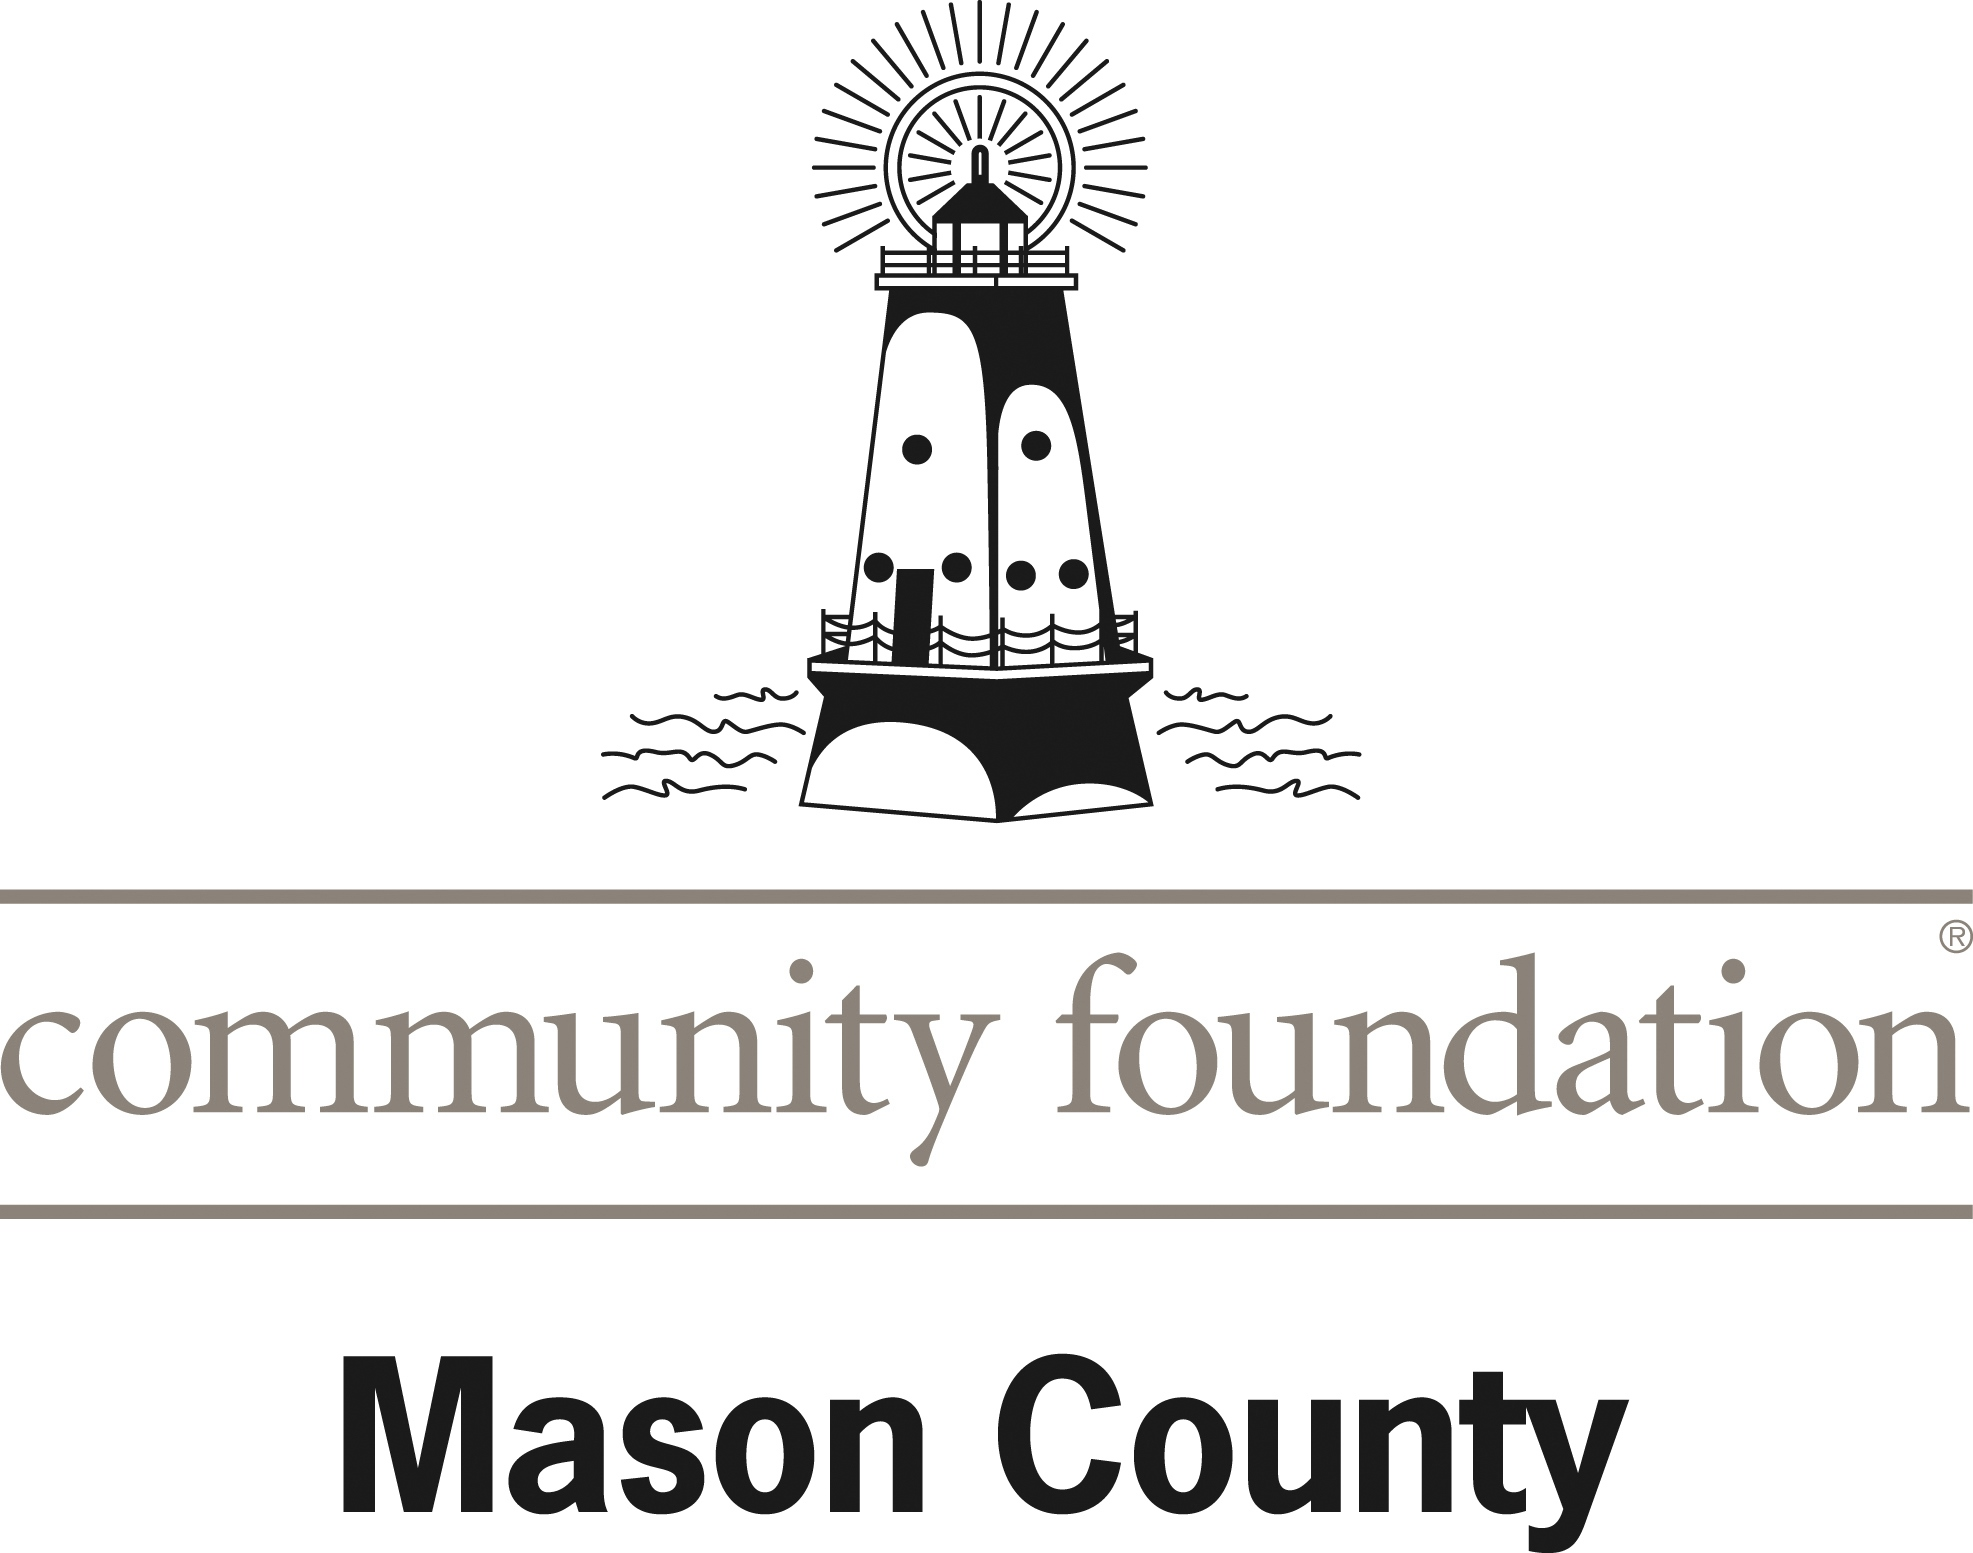 Mason County Community Foundation